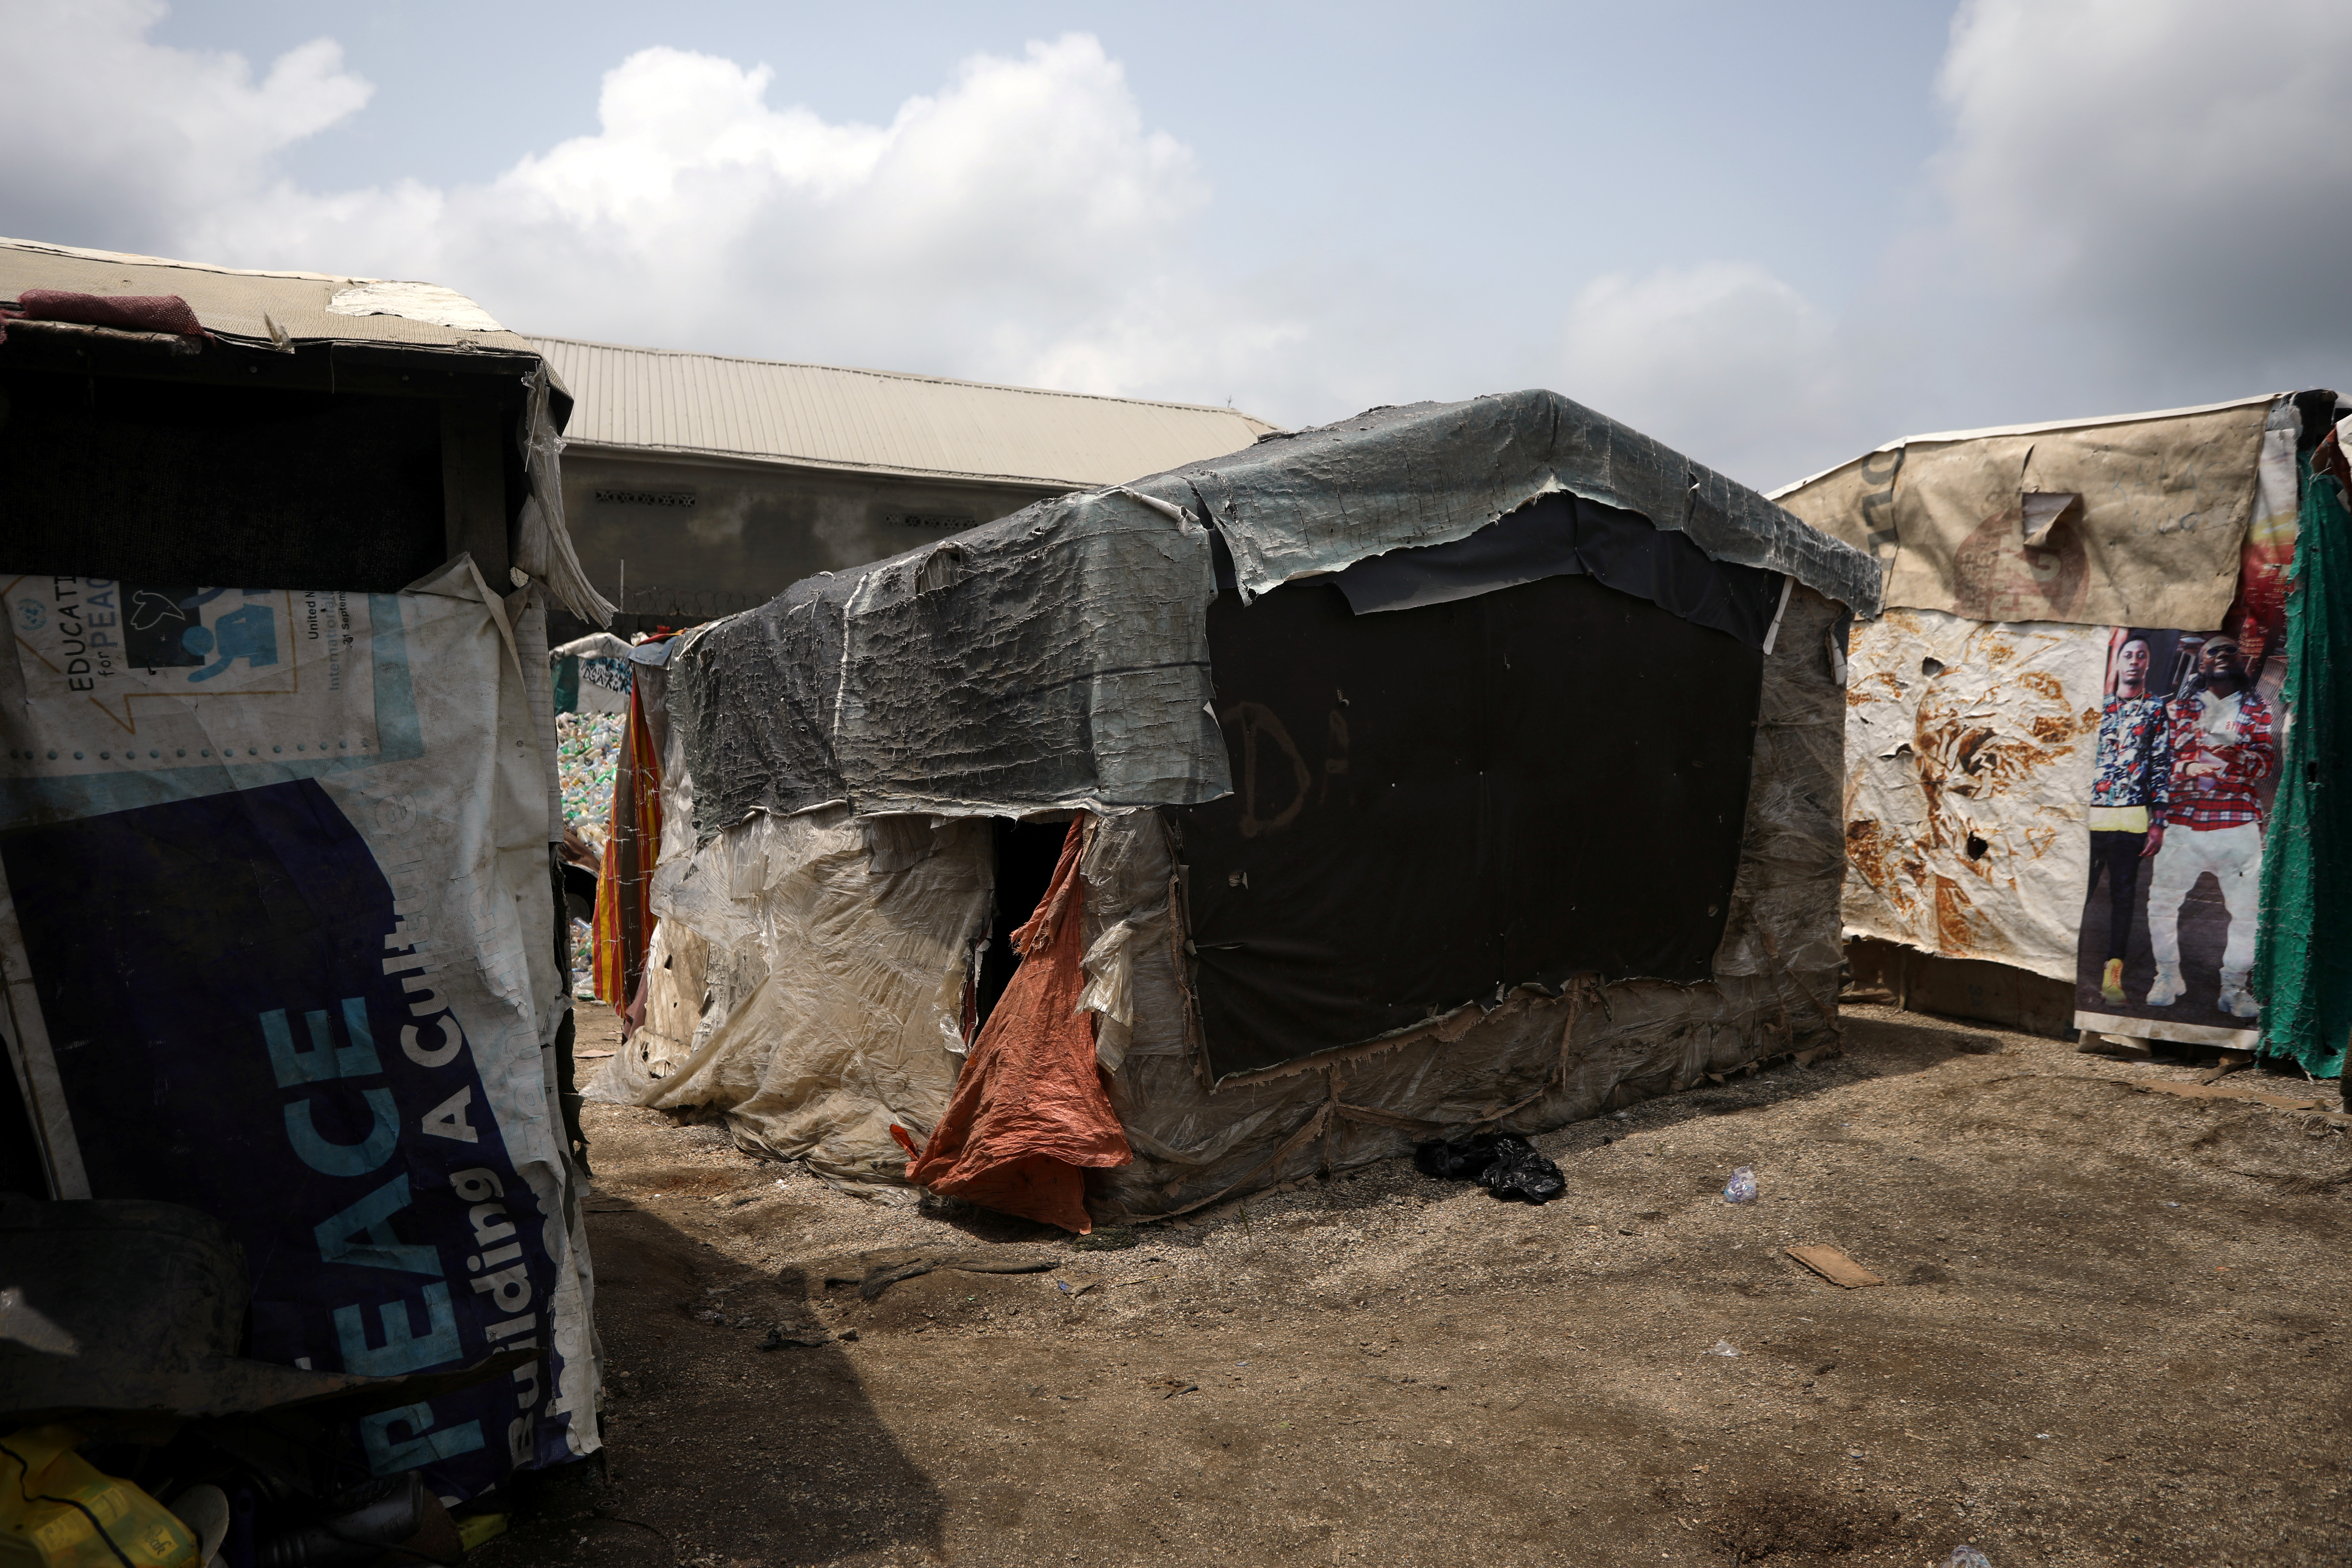 A house with plastic covering is seen in one of the overpopulated settlements in Abuja, Nigeria, on September 23, 2019.